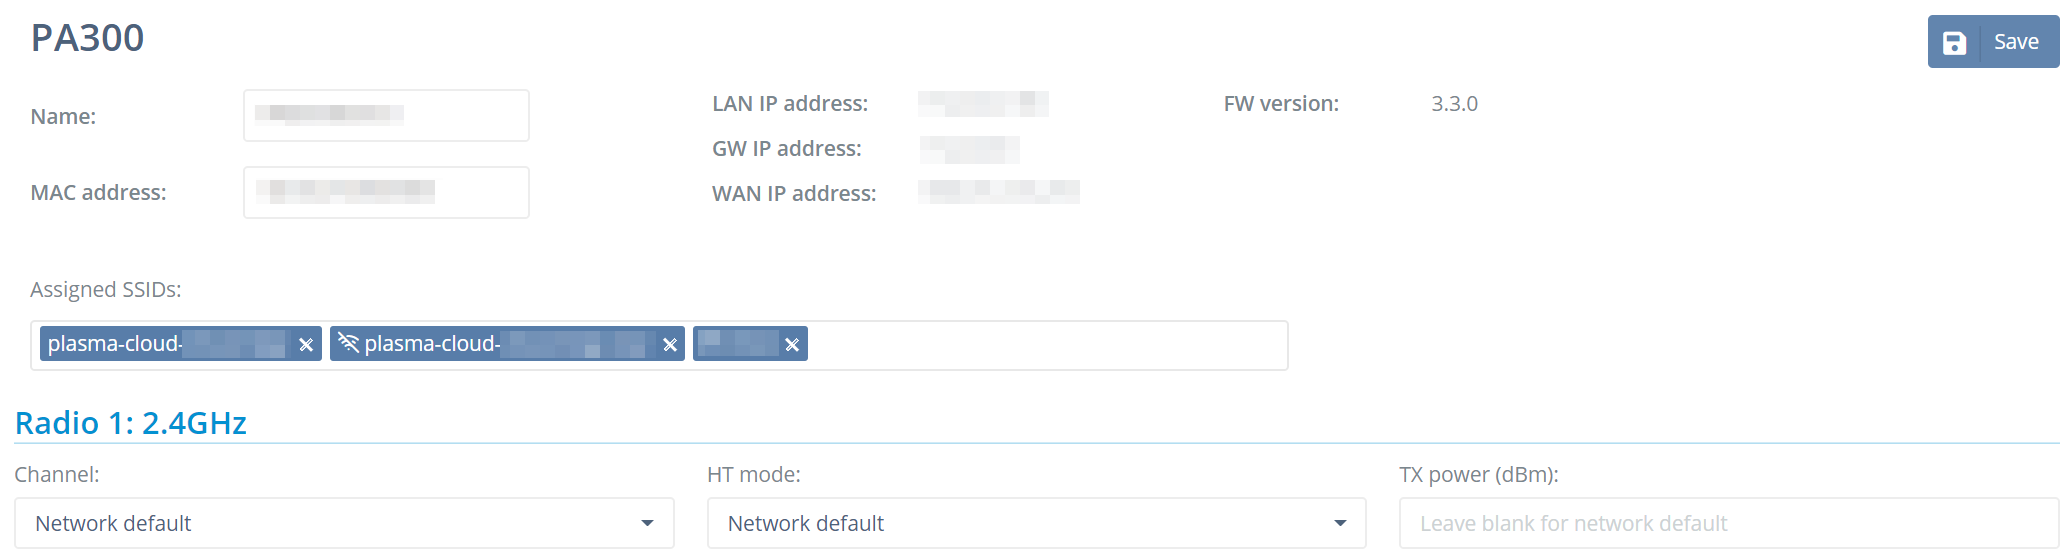 access-point-settings-page.PNG